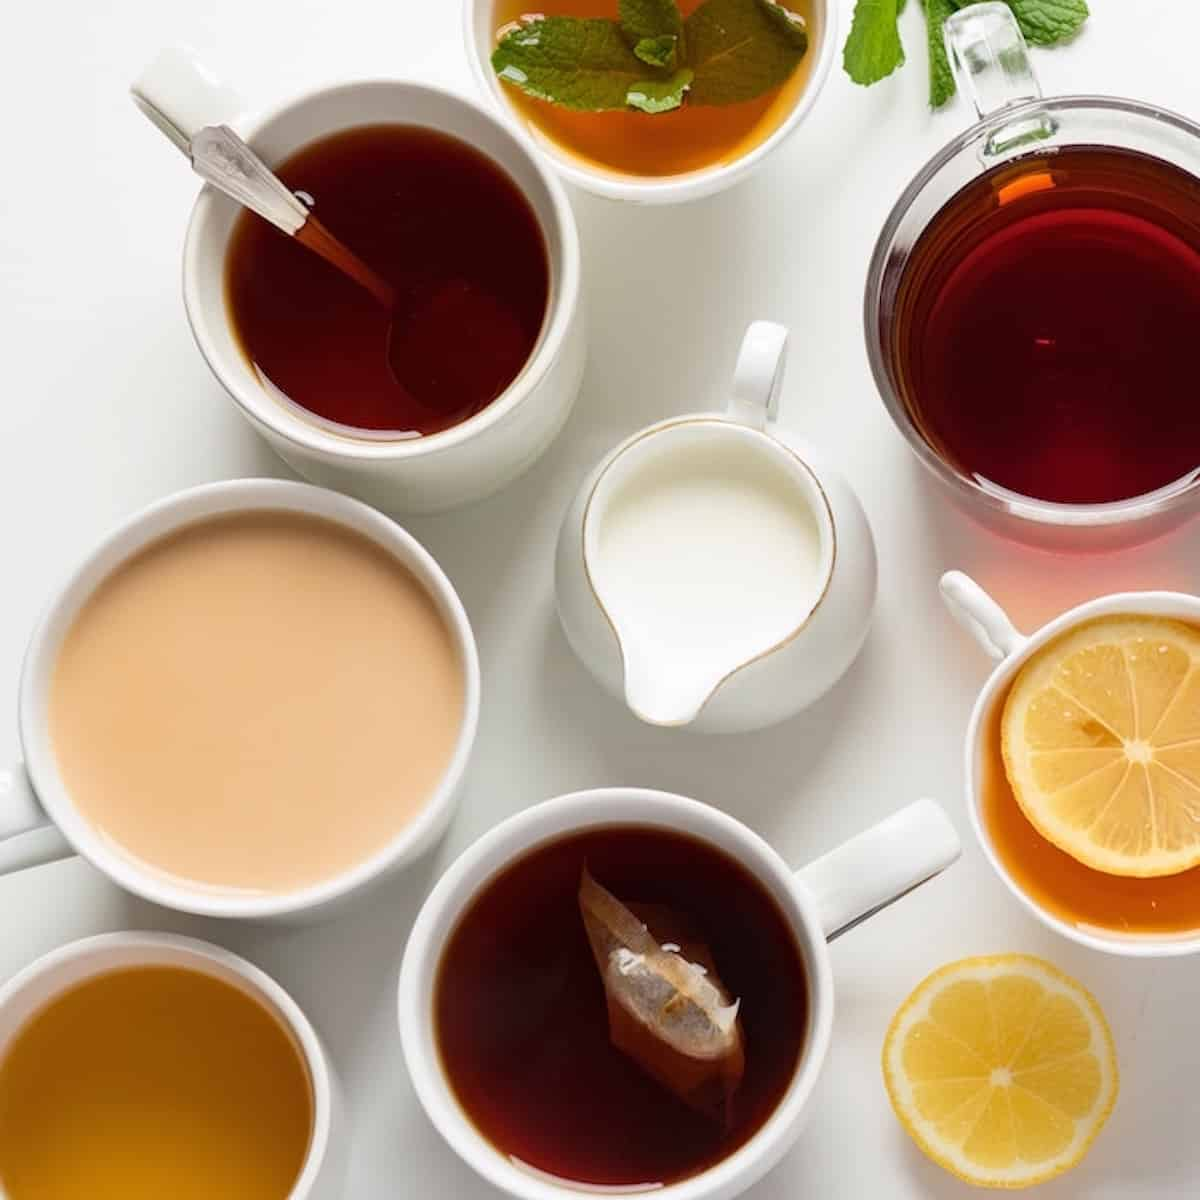 quit coffee multiple cups of tea to drink instead